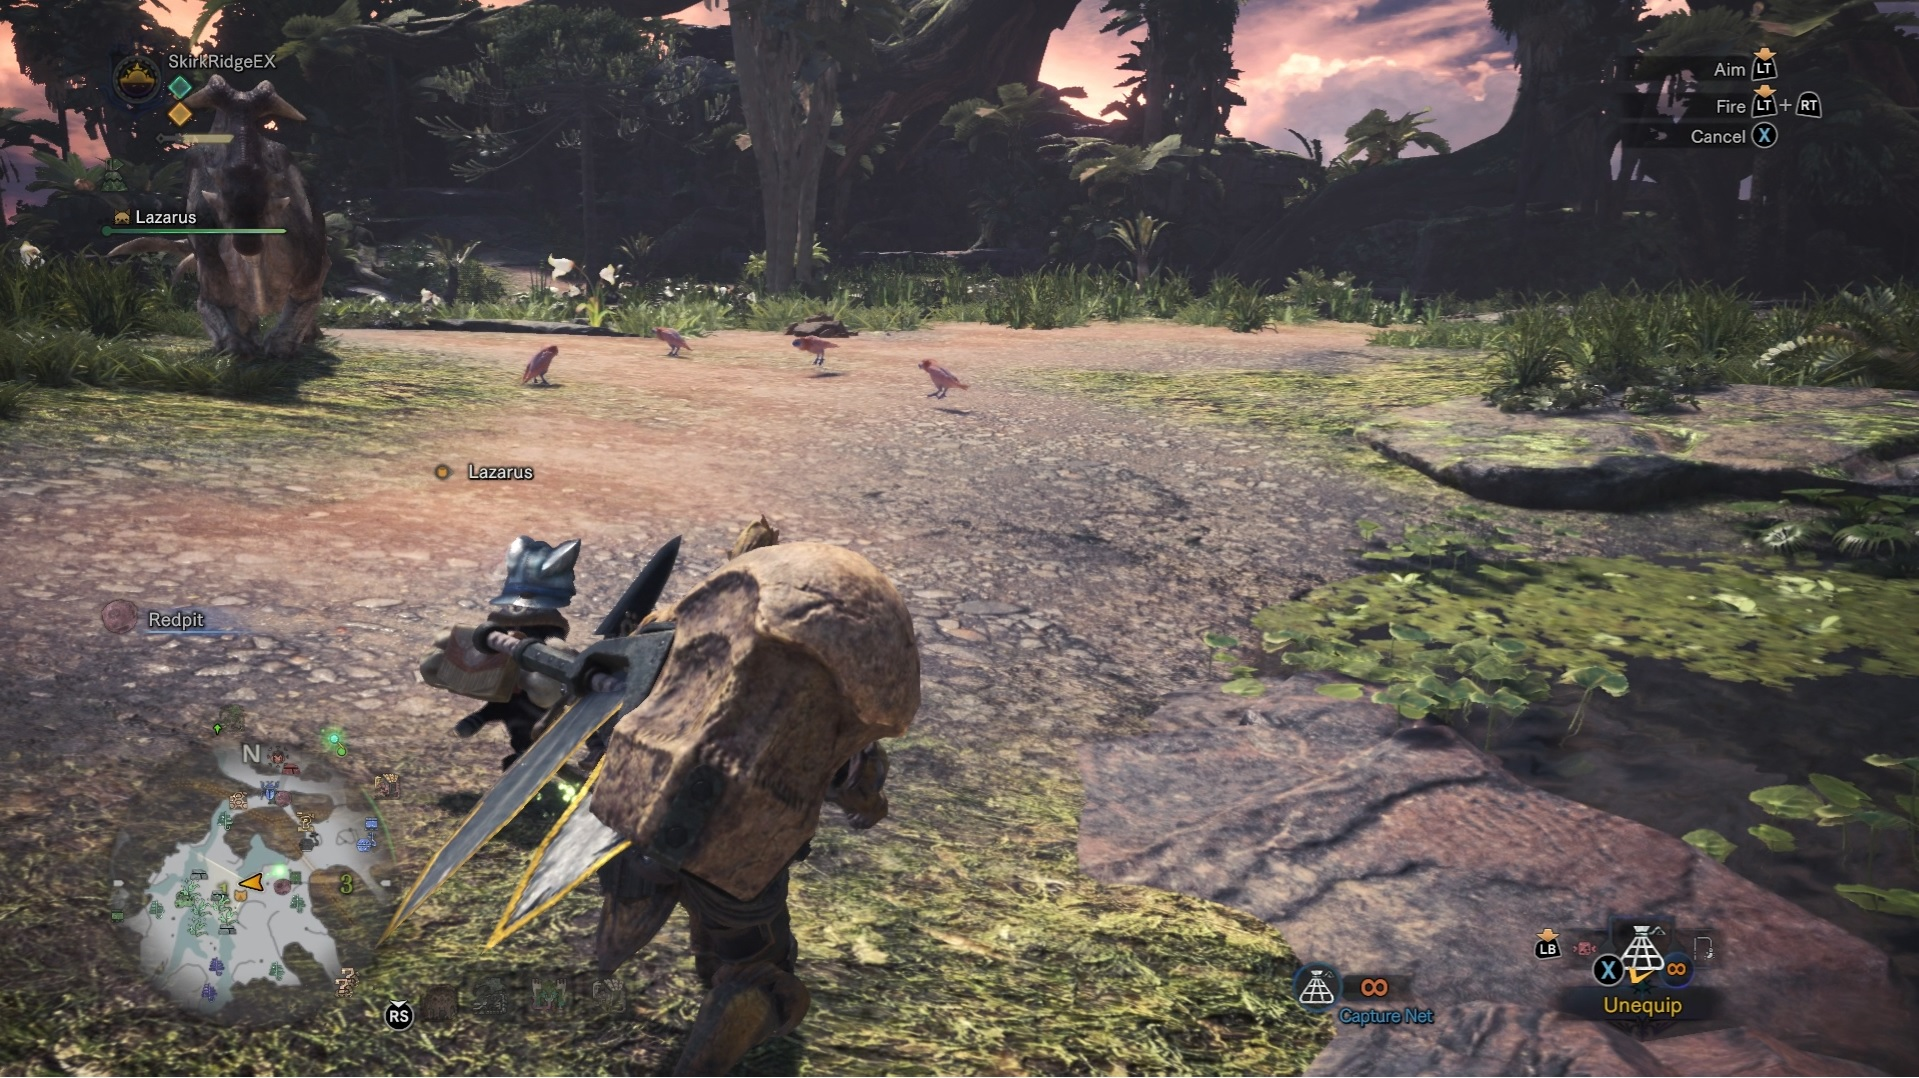 Player is attempting to capture pink birds.